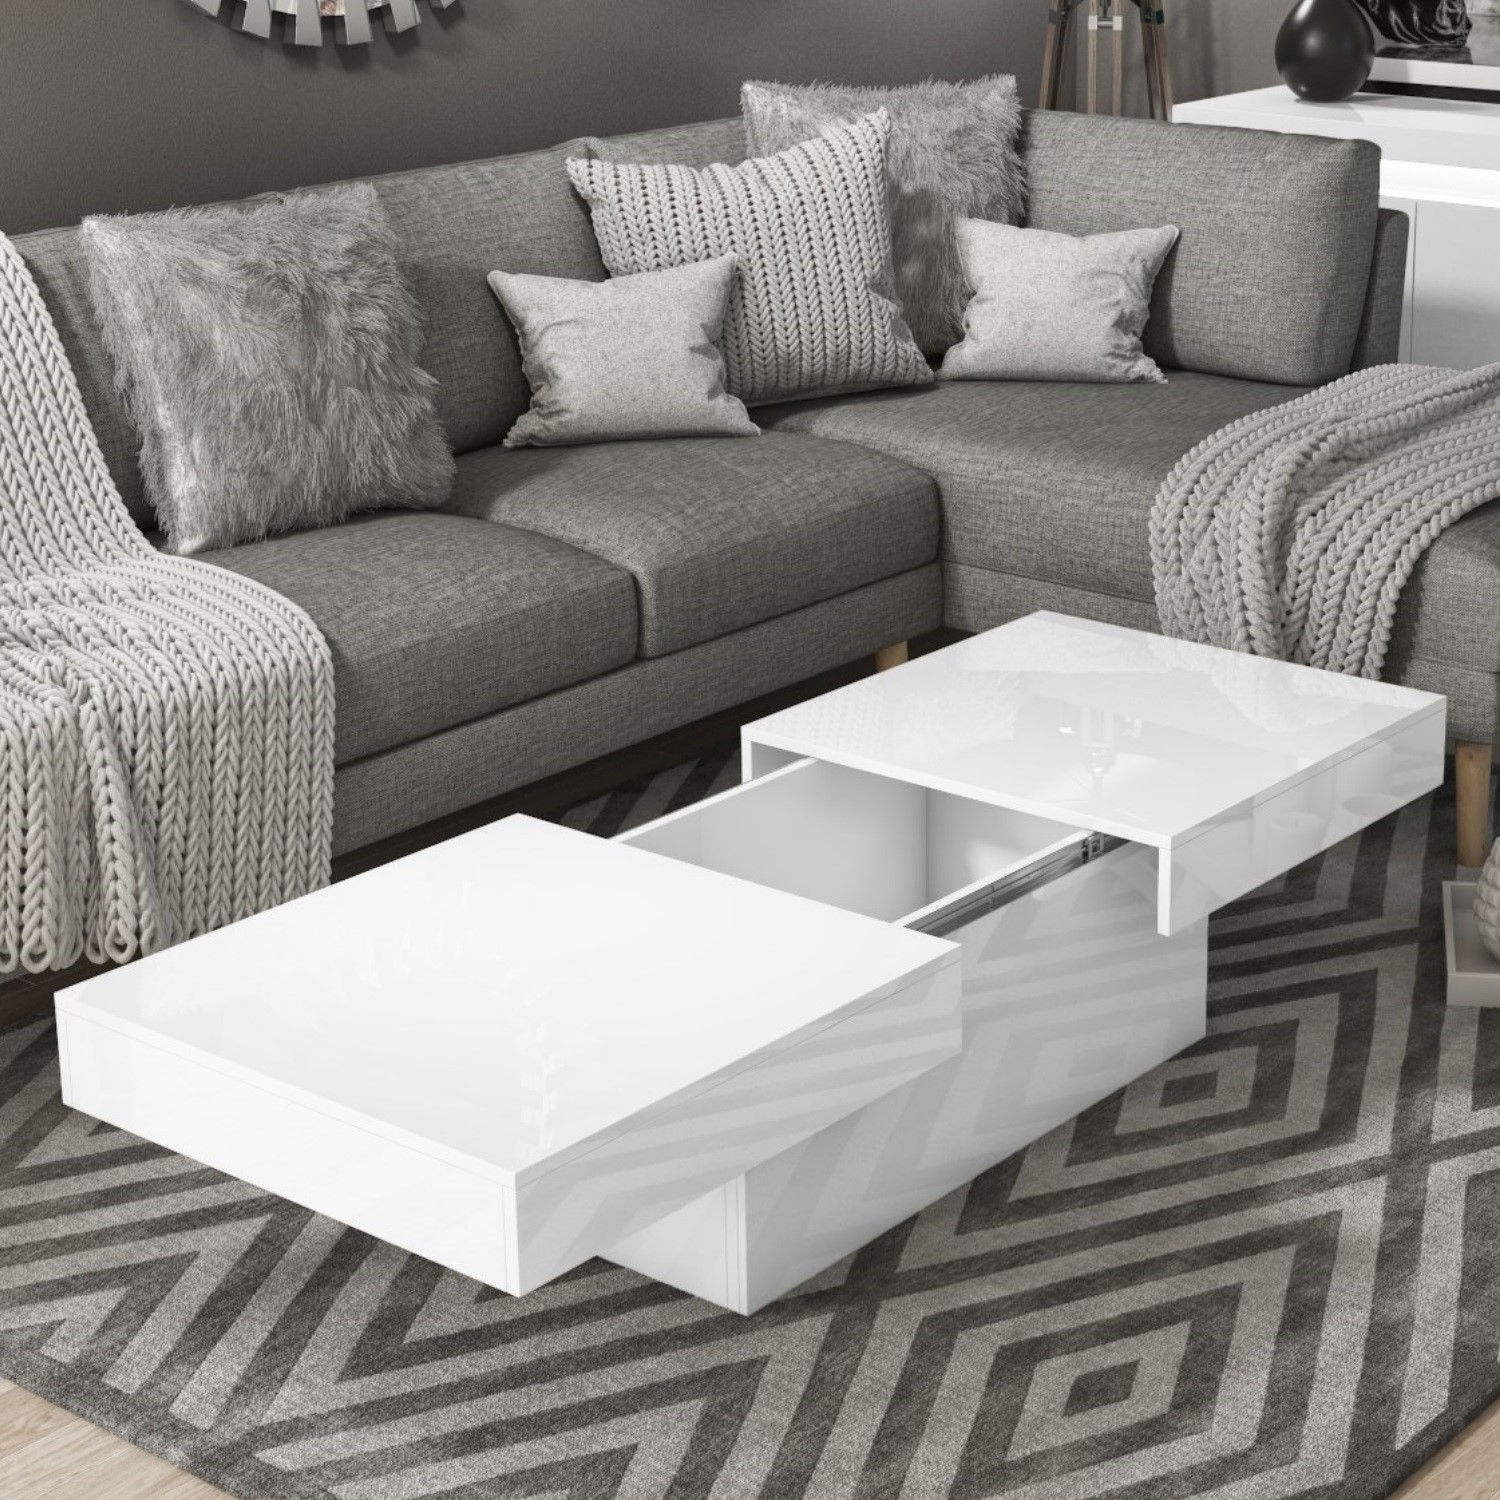 details about white gloss storage coffee table rectangular tiffany tiff037